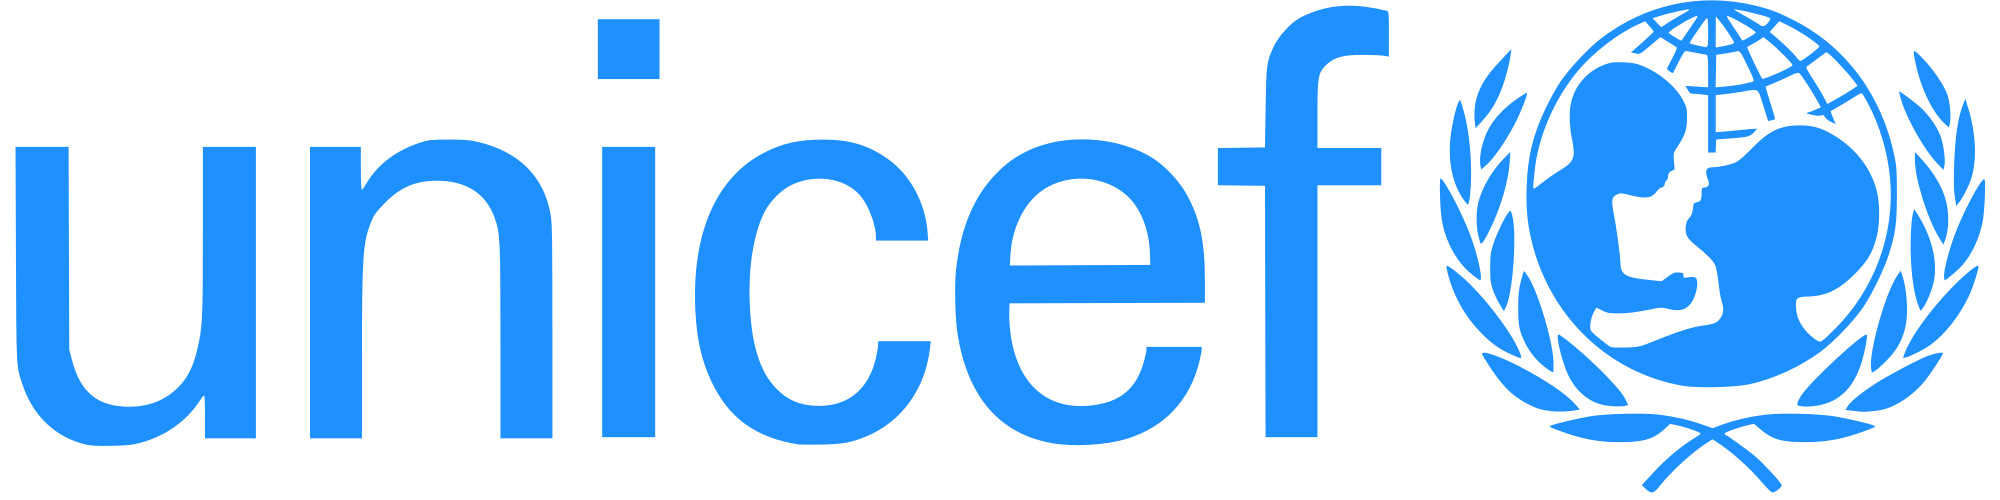 Access Challenge Partners with Unicef